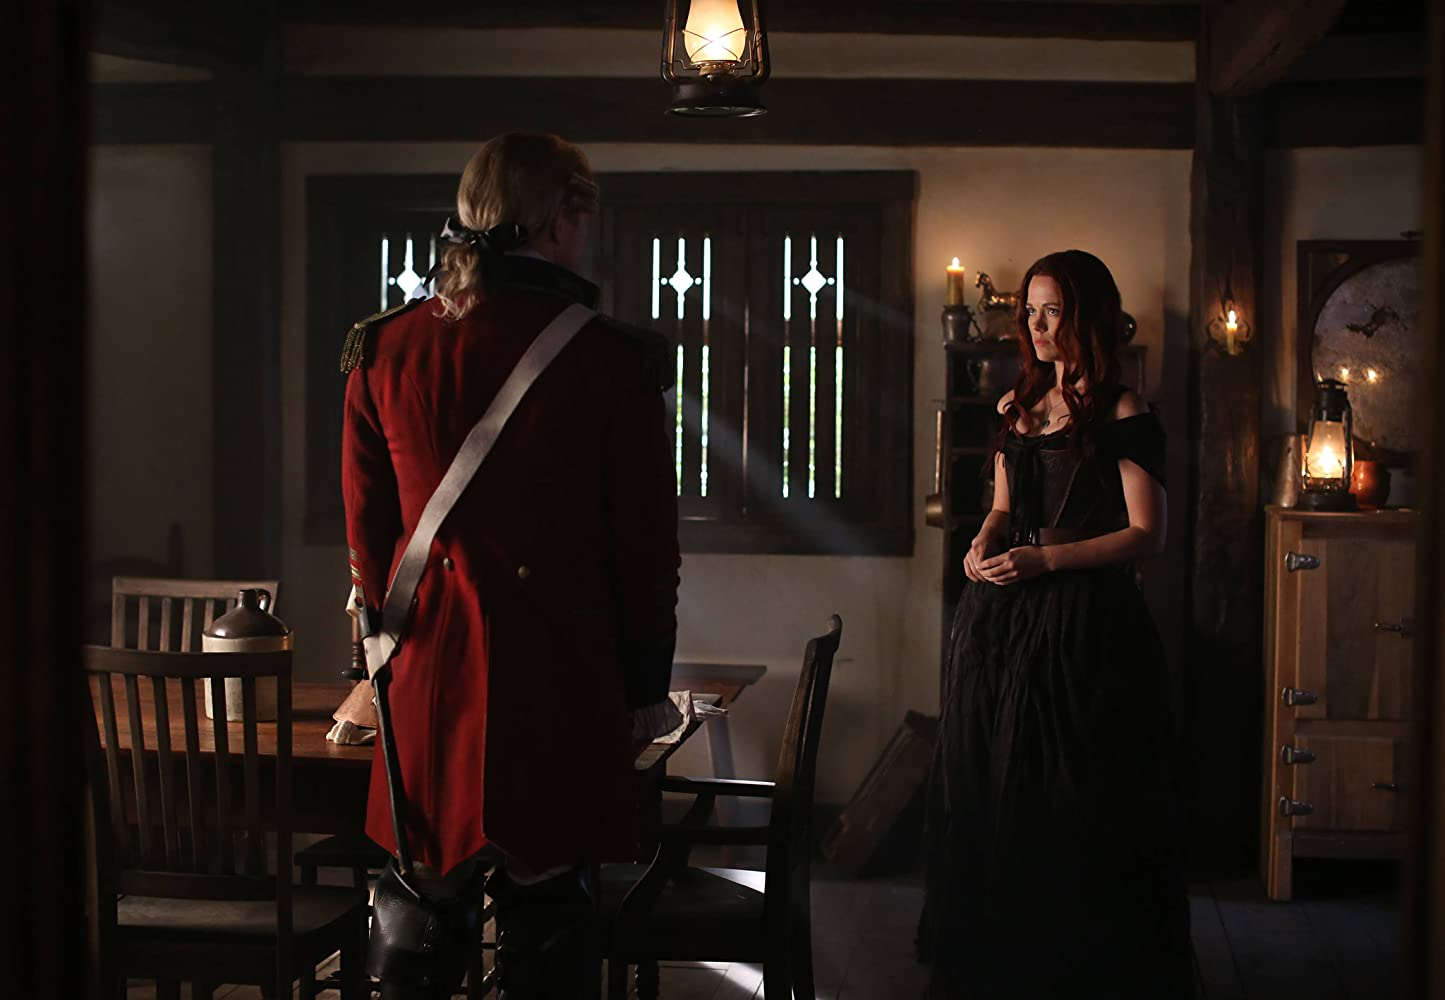 Neil Jackson and Katia Winter in Sleepy Hollow (2013)